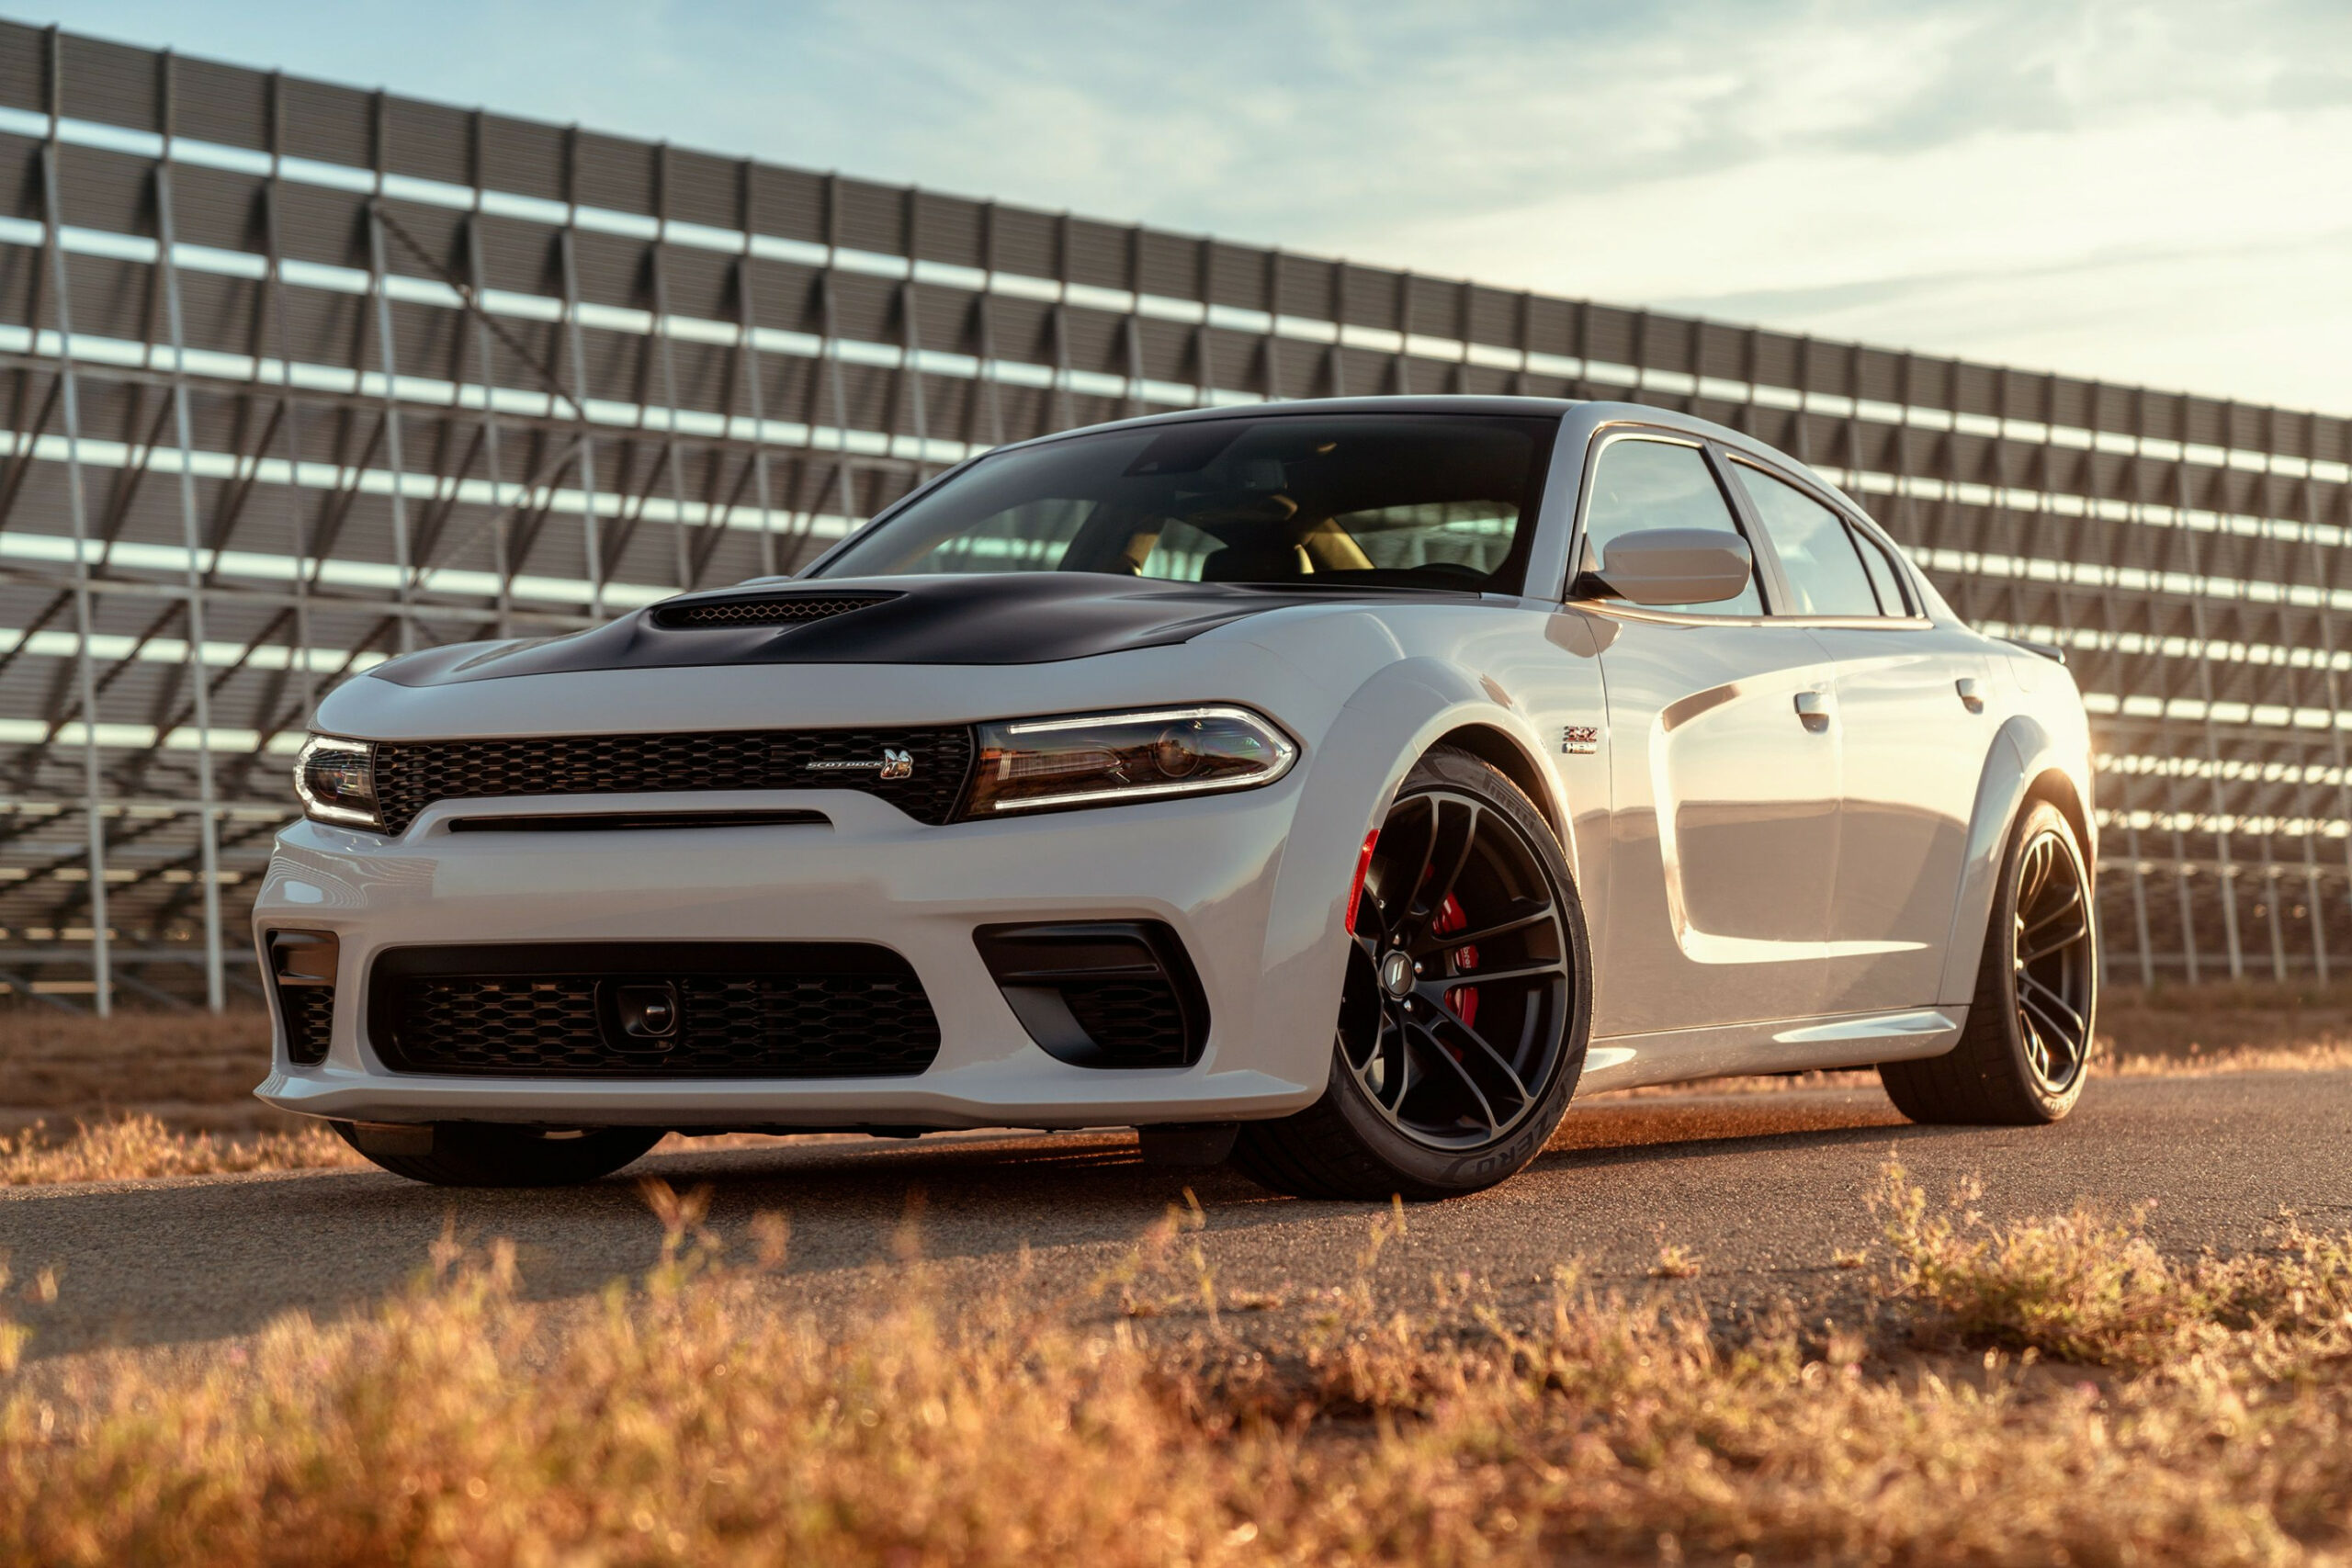 12 Dodge Charger Review, Pricing, and Specs